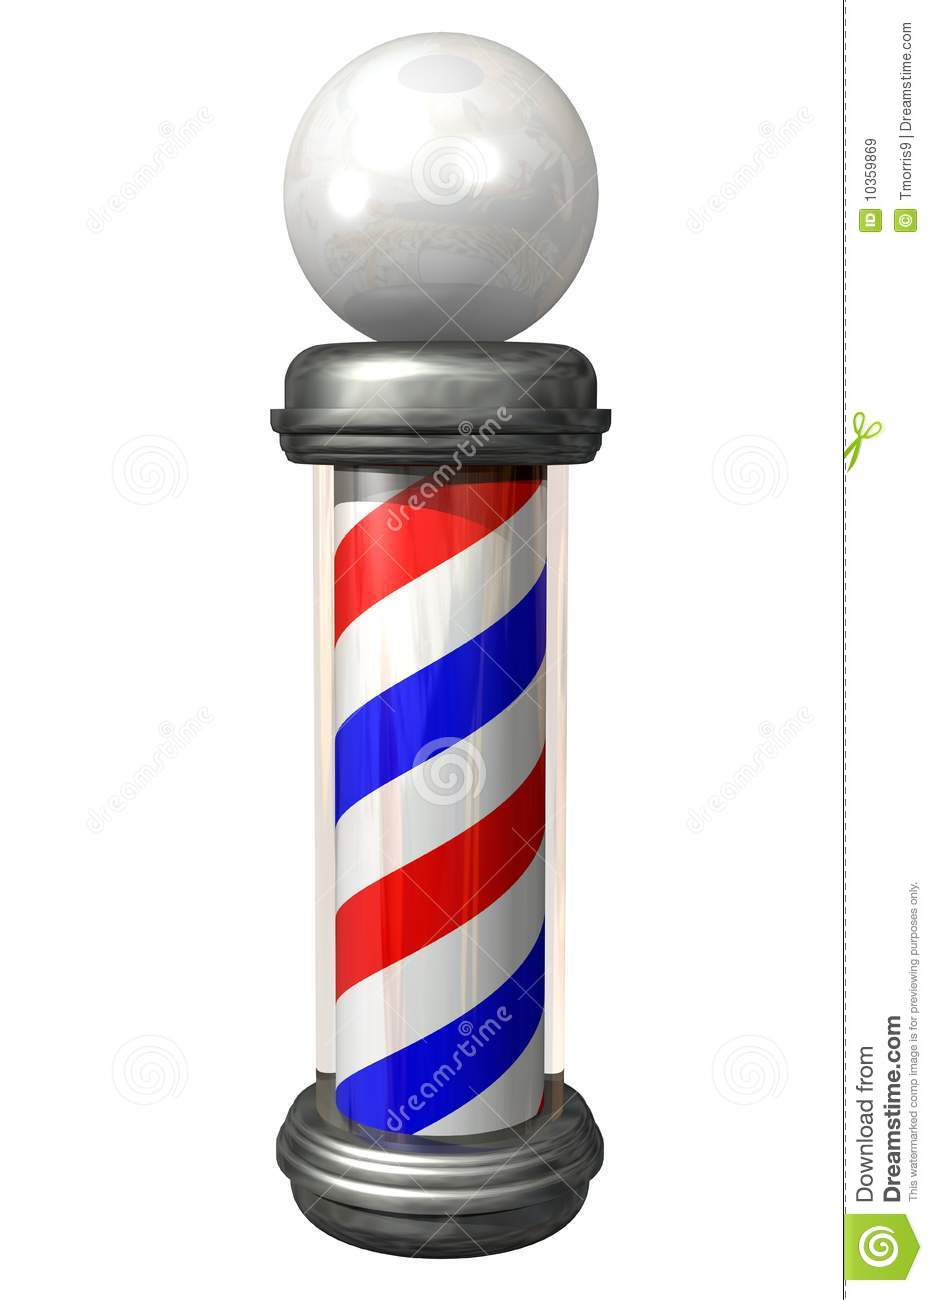 Barber Pole Royalty Free Stock Images - Image: 10359869